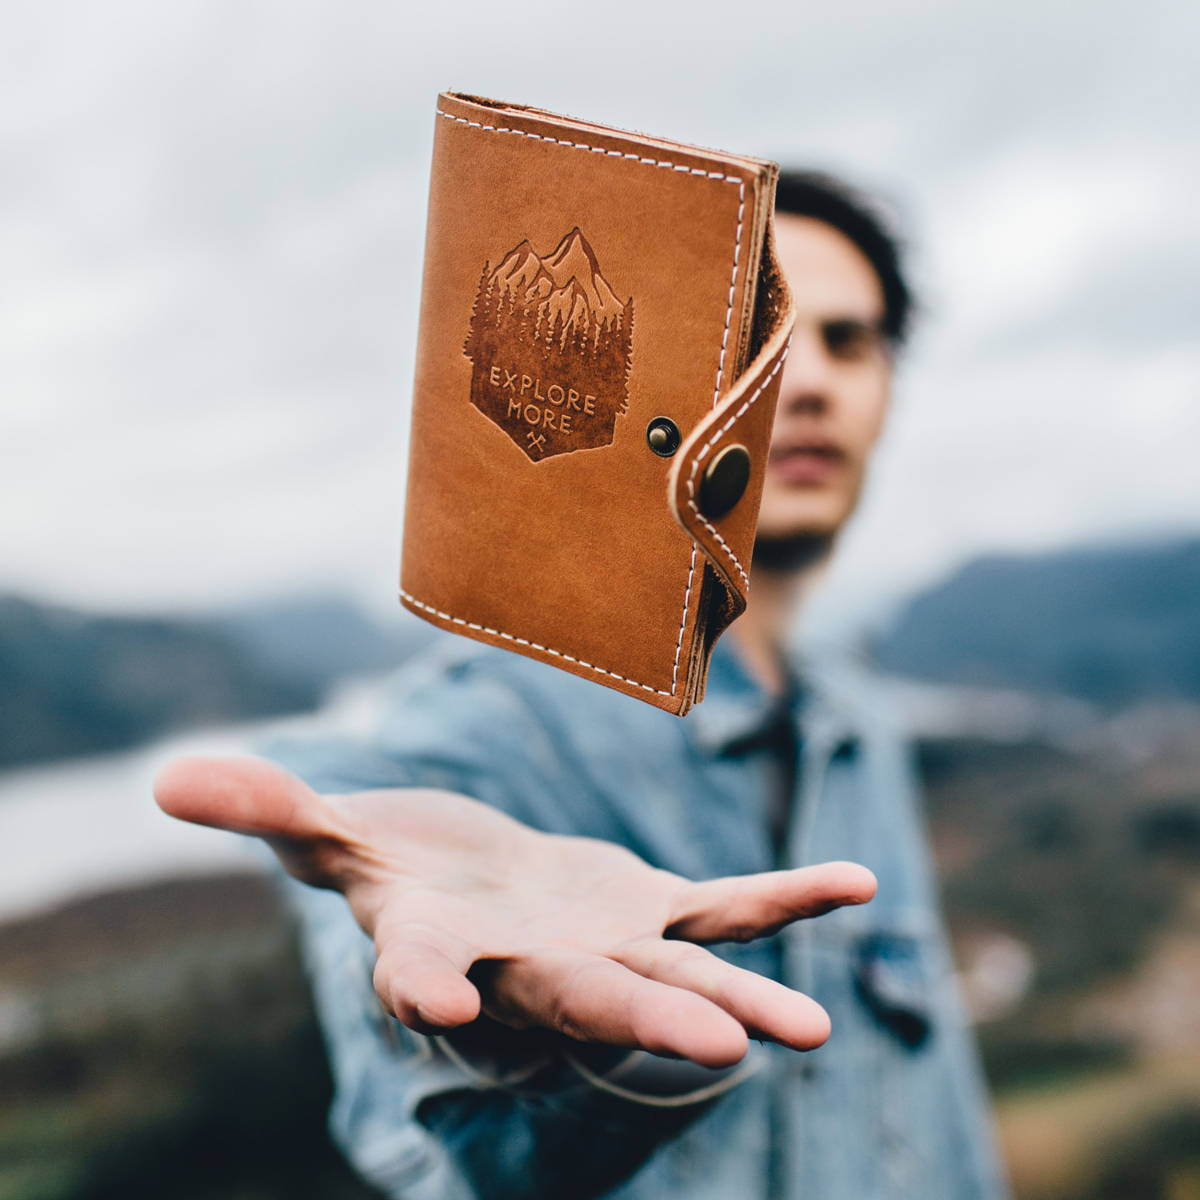 a man tossing handmade leather journal into the air